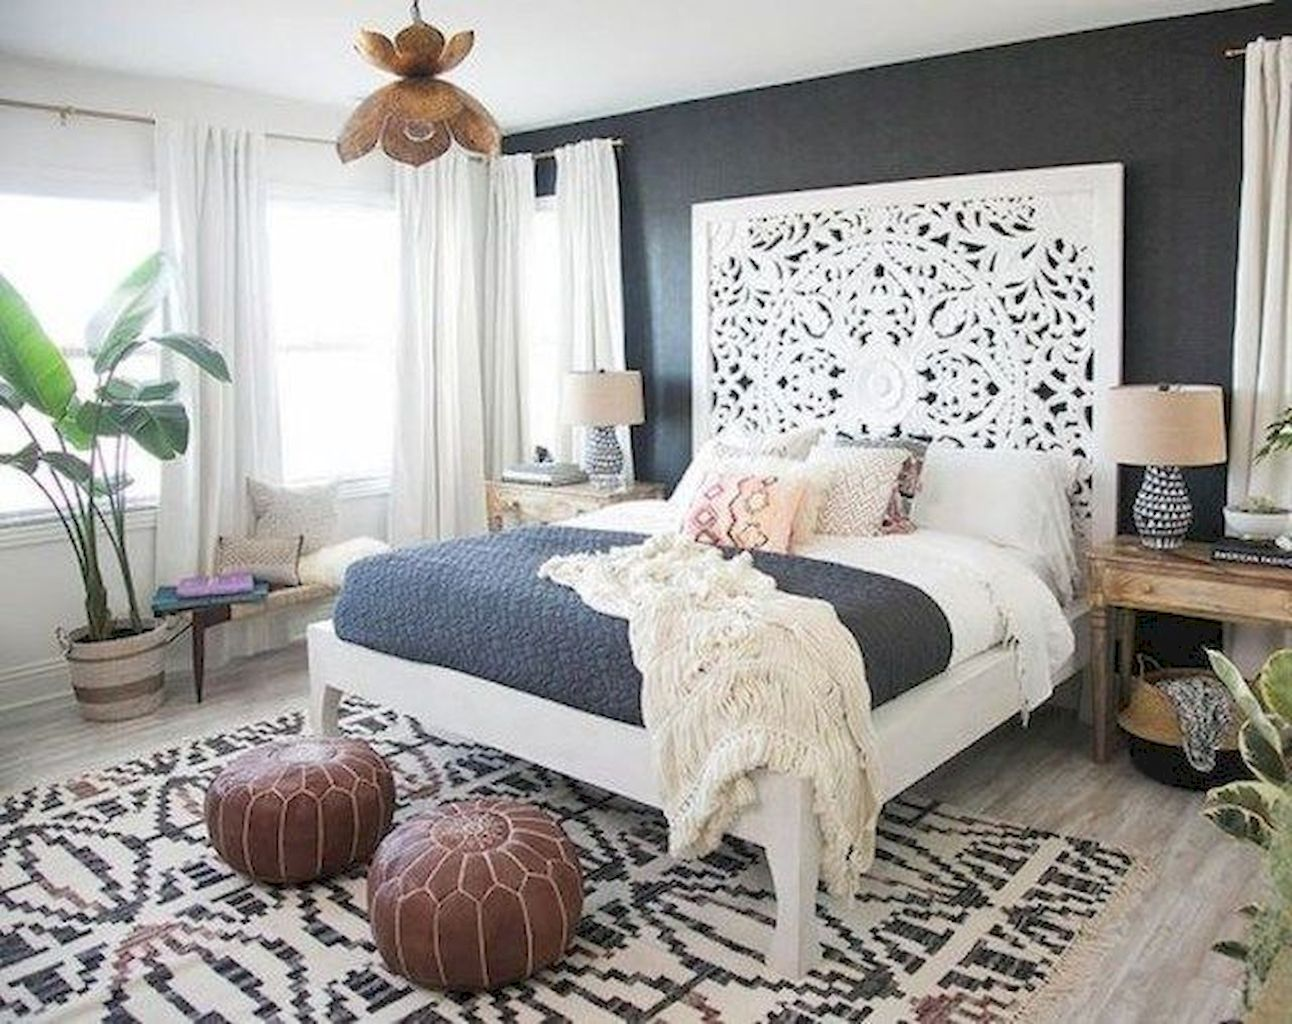 How to design bedroom cheap